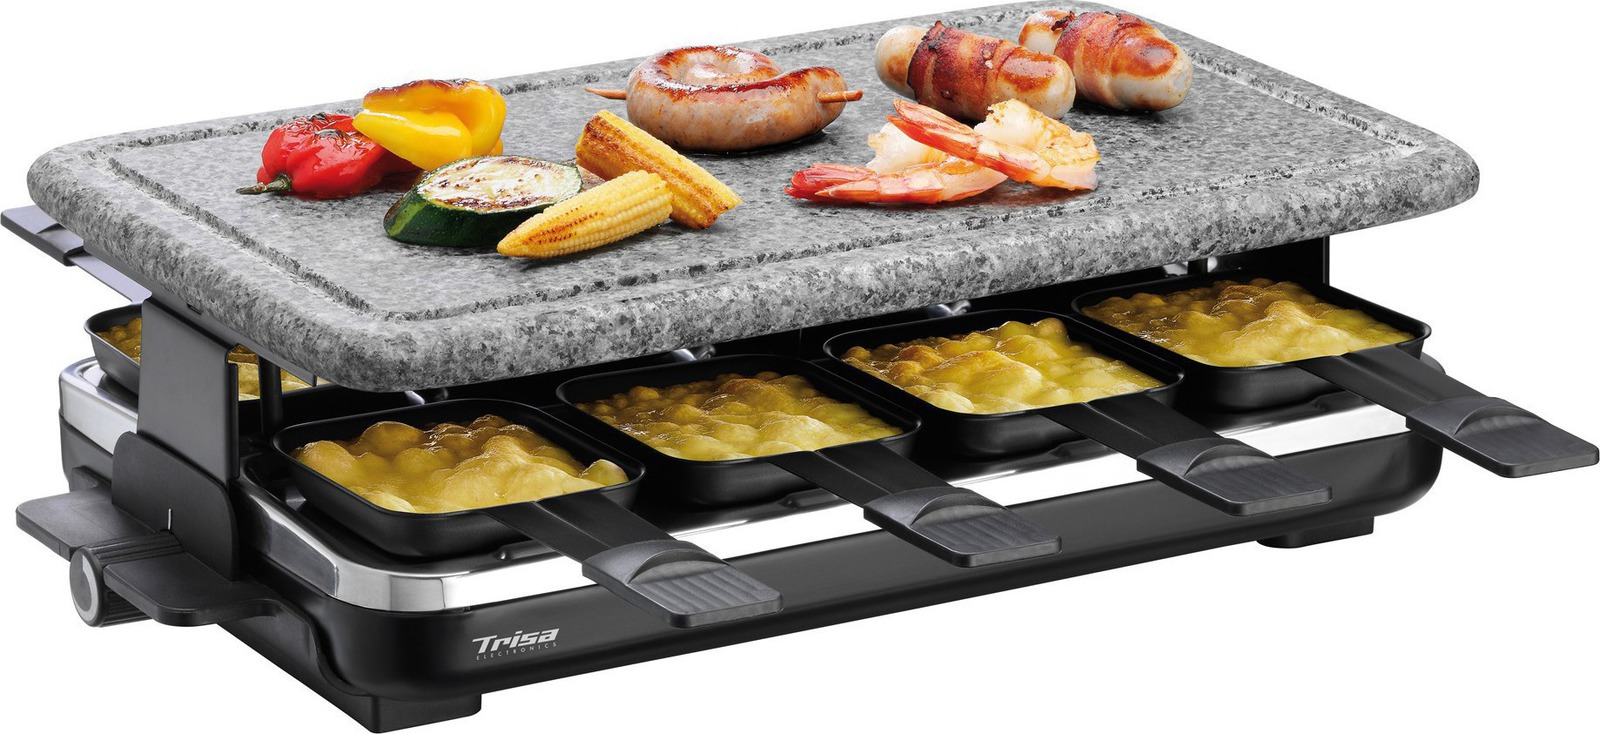 trisa of switzerland grill raclette cheese. Black Bedroom Furniture Sets. Home Design Ideas